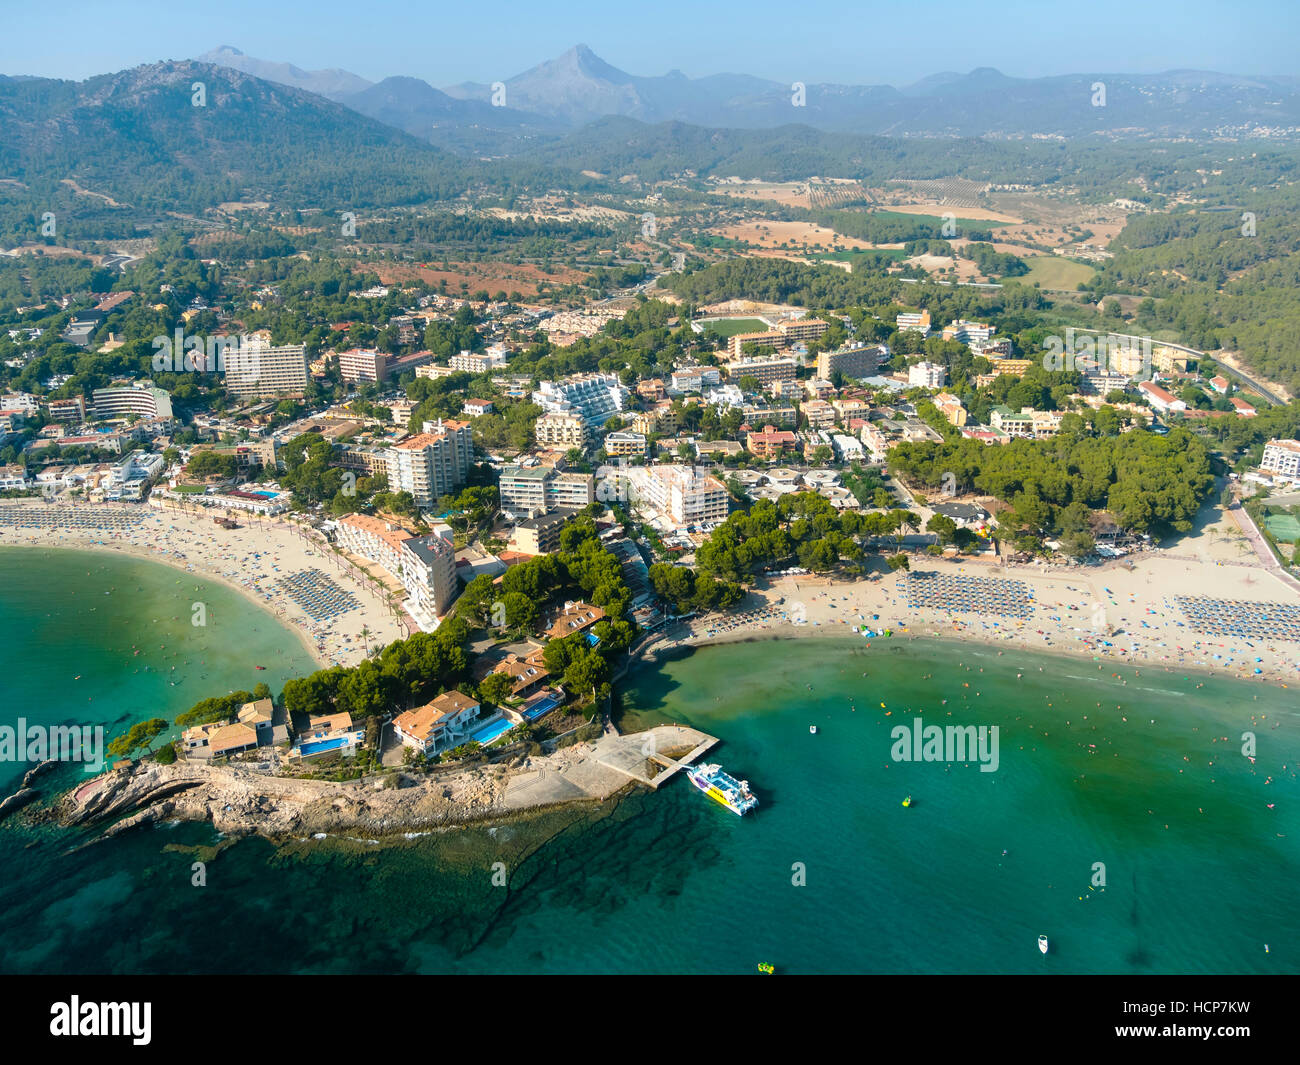 Aerial photograph, view of bay of Peguera, Tramuntana mountains behind, Mallorca, Balearic Islands, Spain - Stock Image